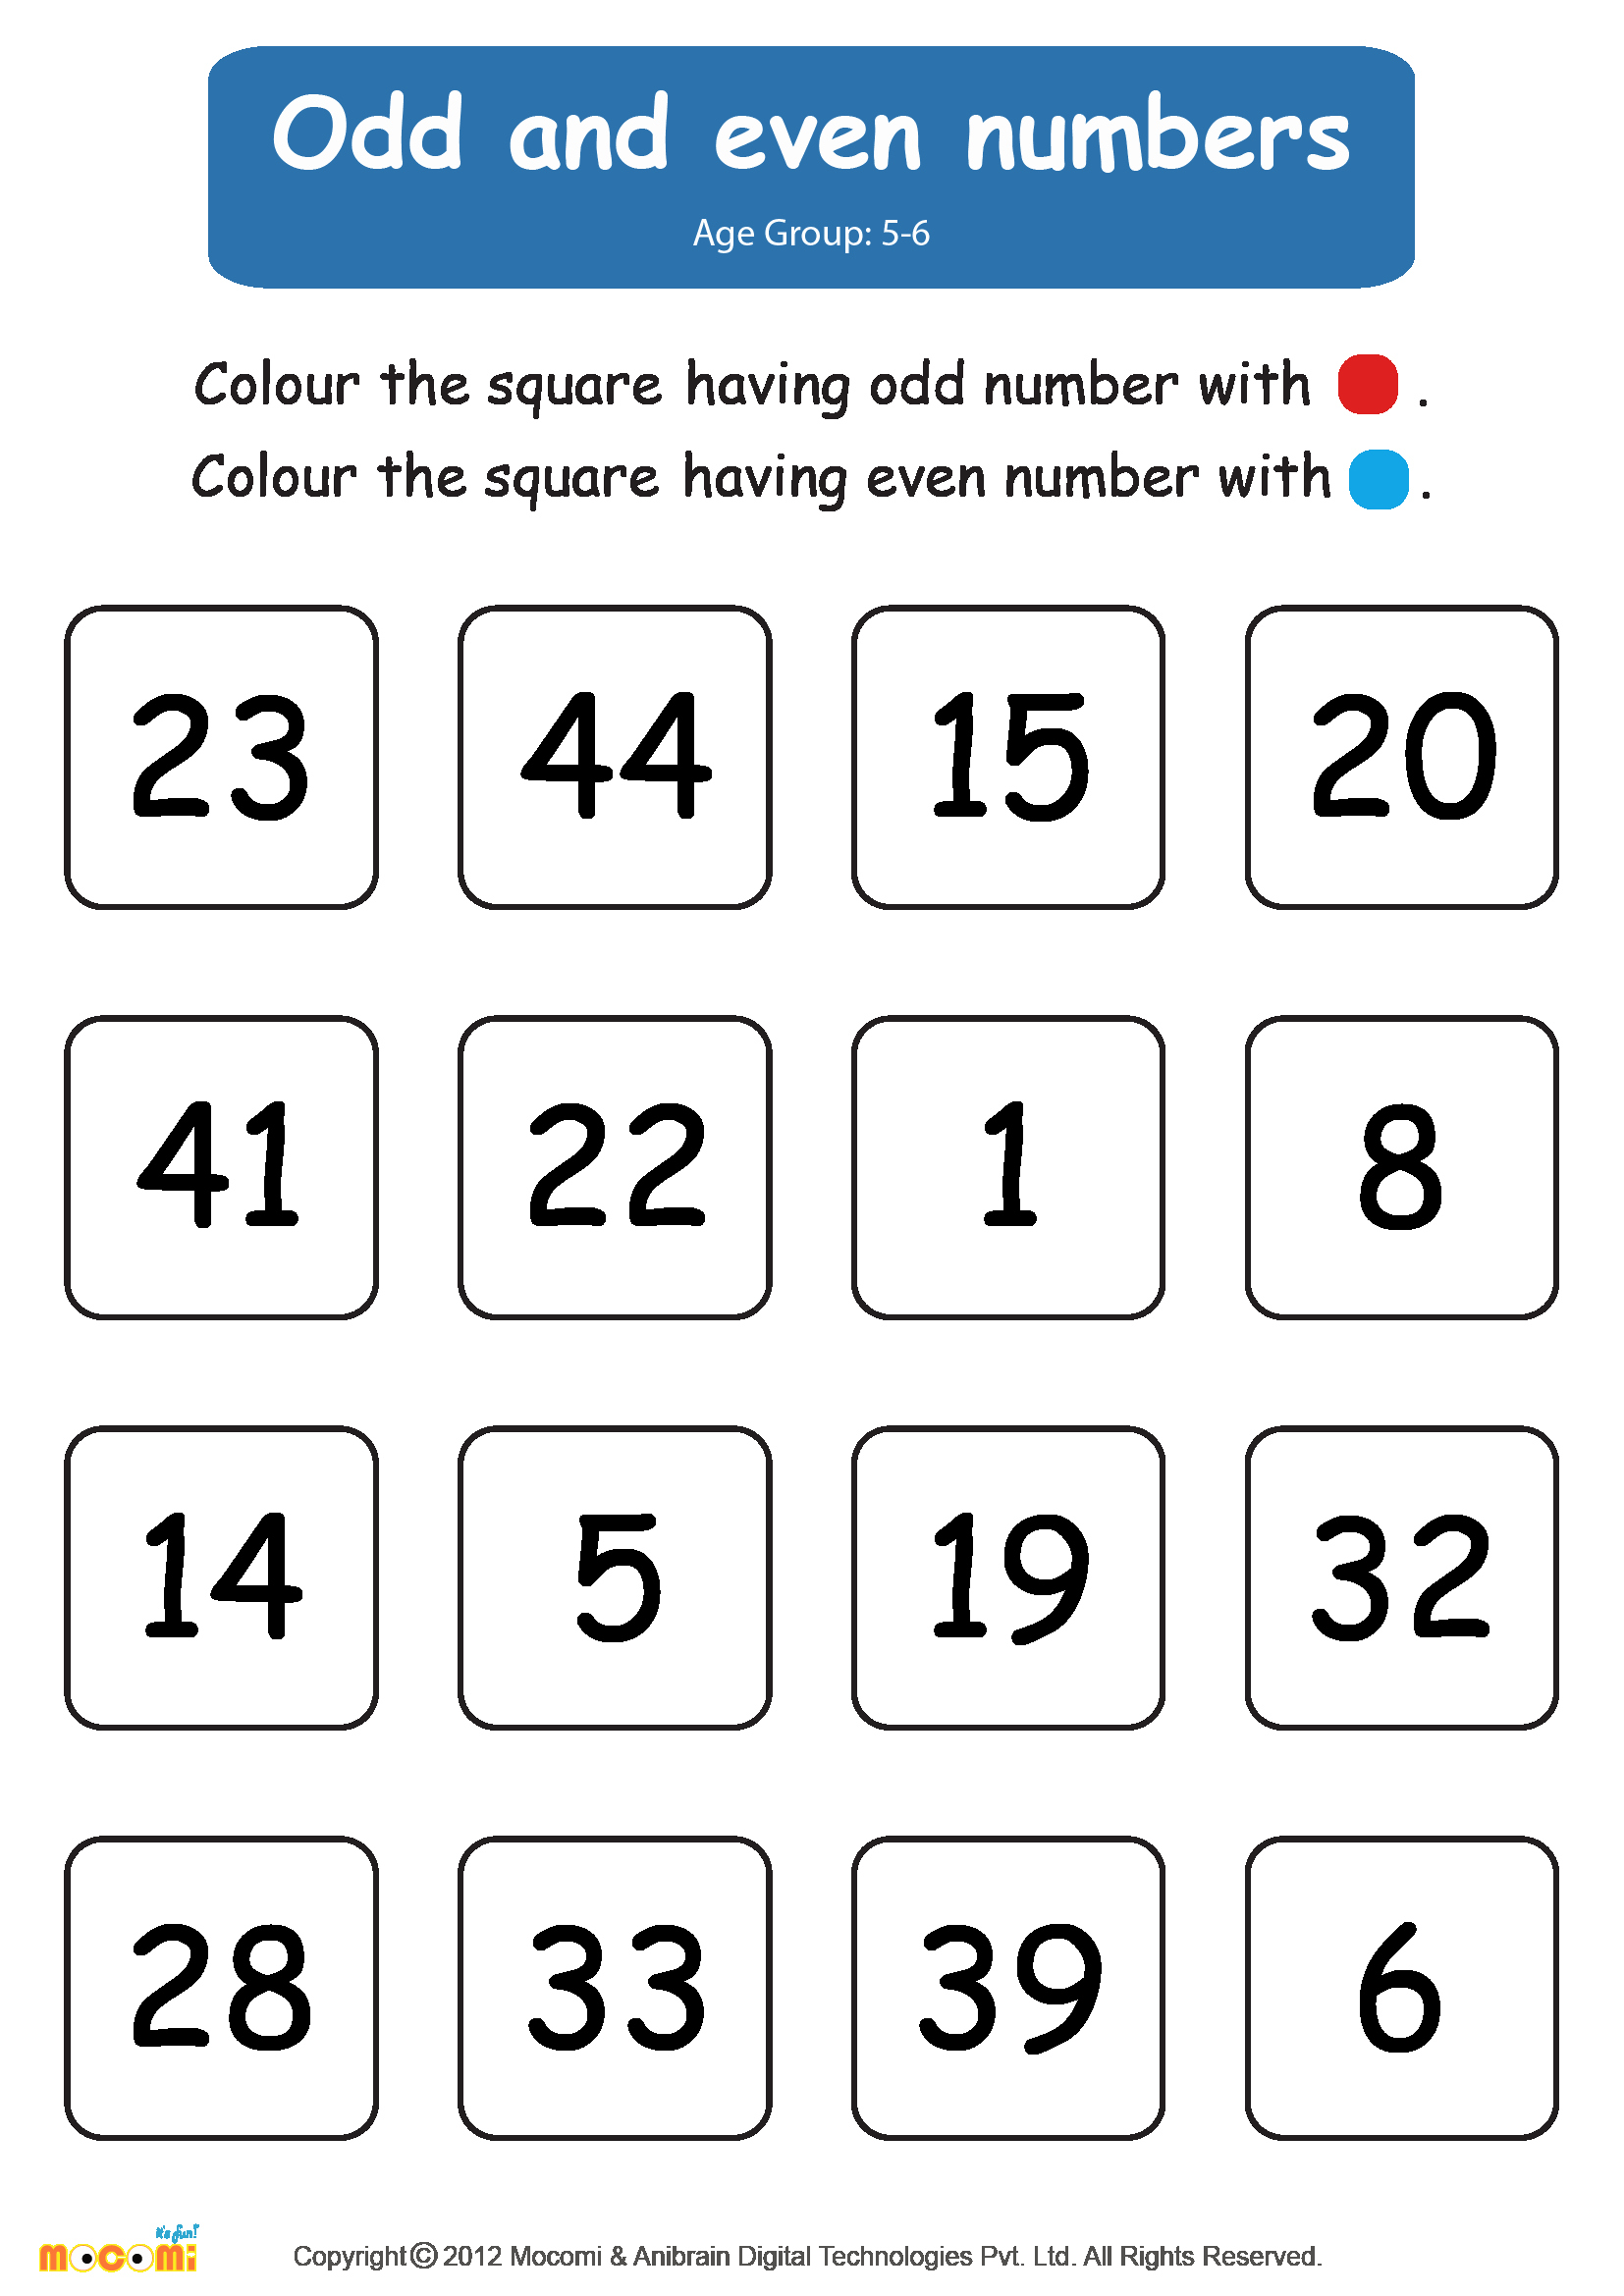 Odds and even Worksheet Lovely Odd and even Numbers Worksheet for Kids